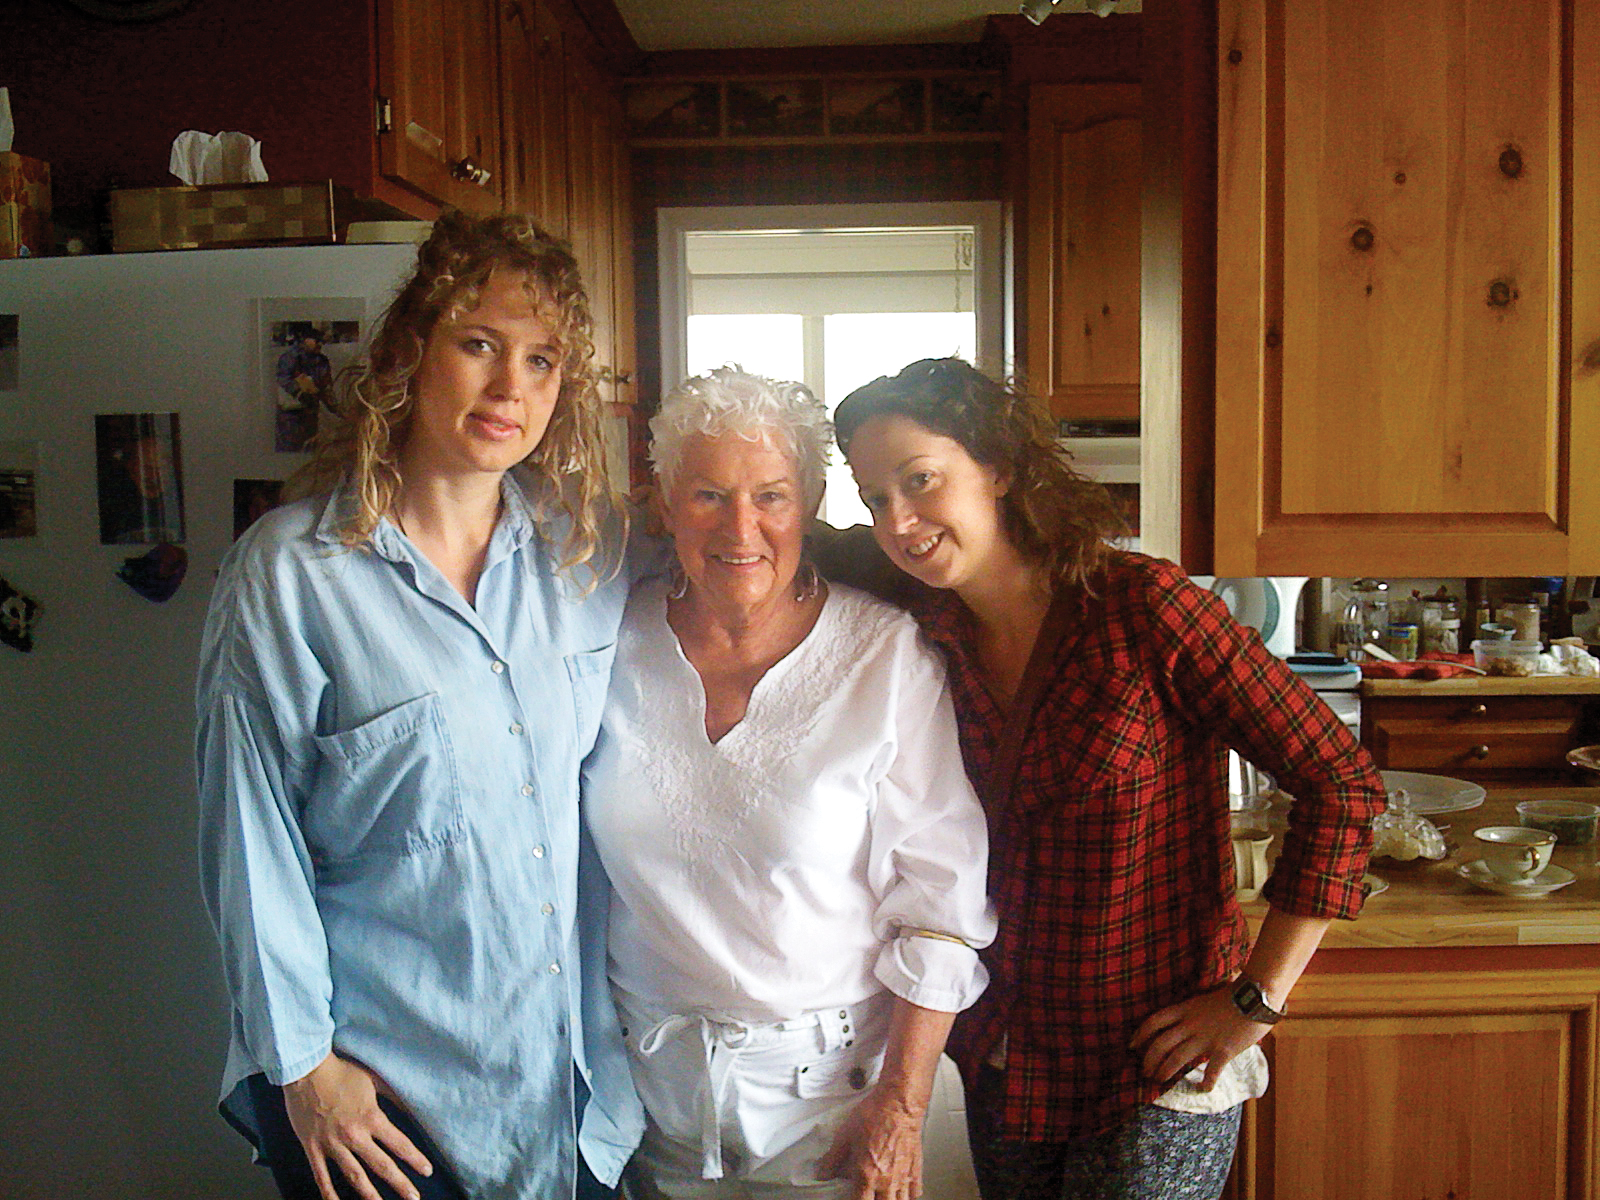 Barbara with guests Jessica Beresford (left) and Chatelaine editor Alex Laws